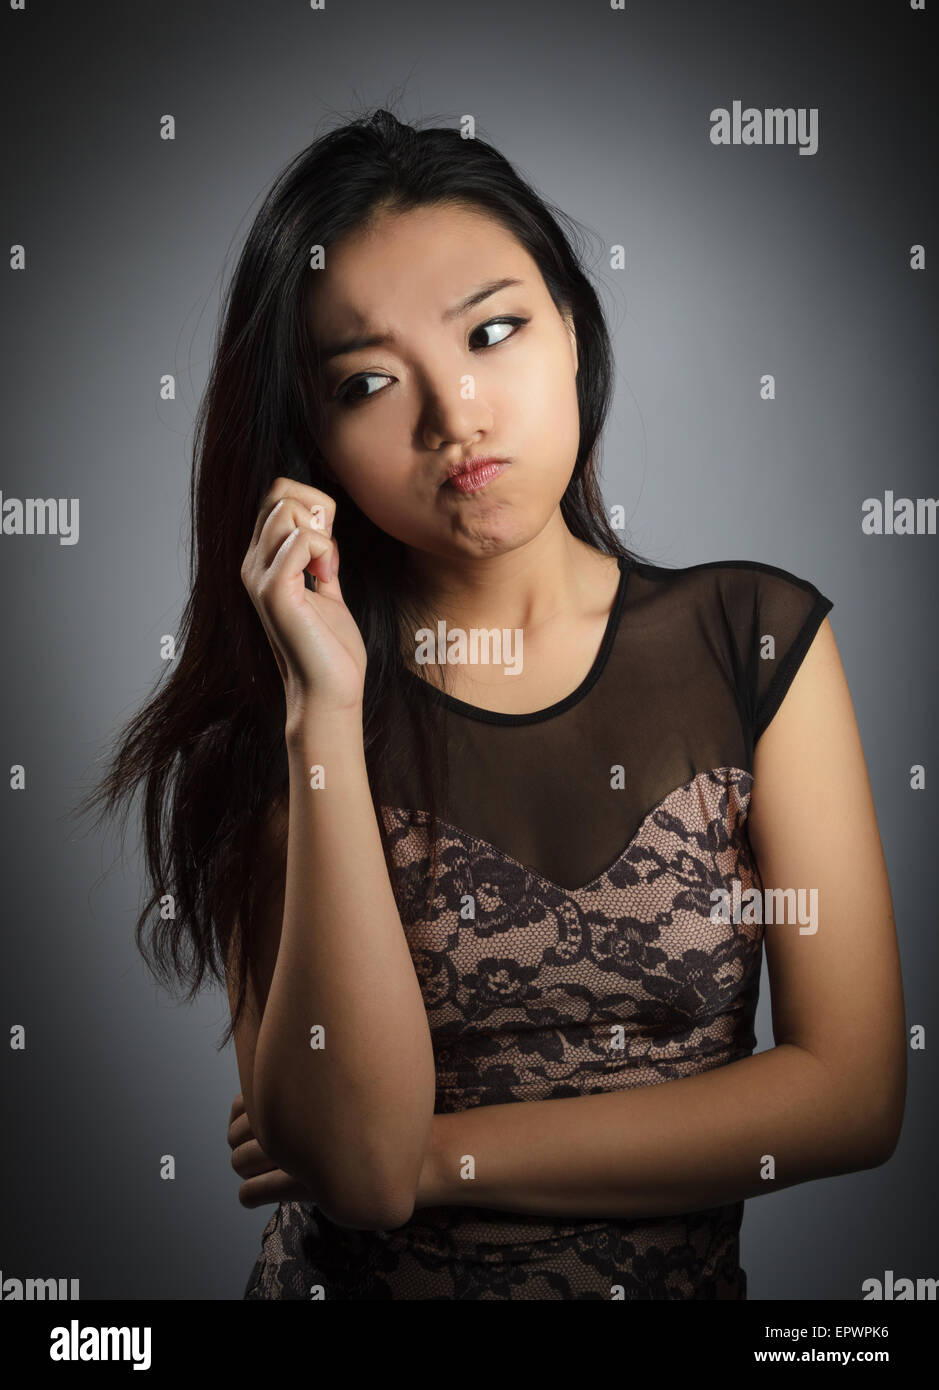 Something good looking asian girls very pity